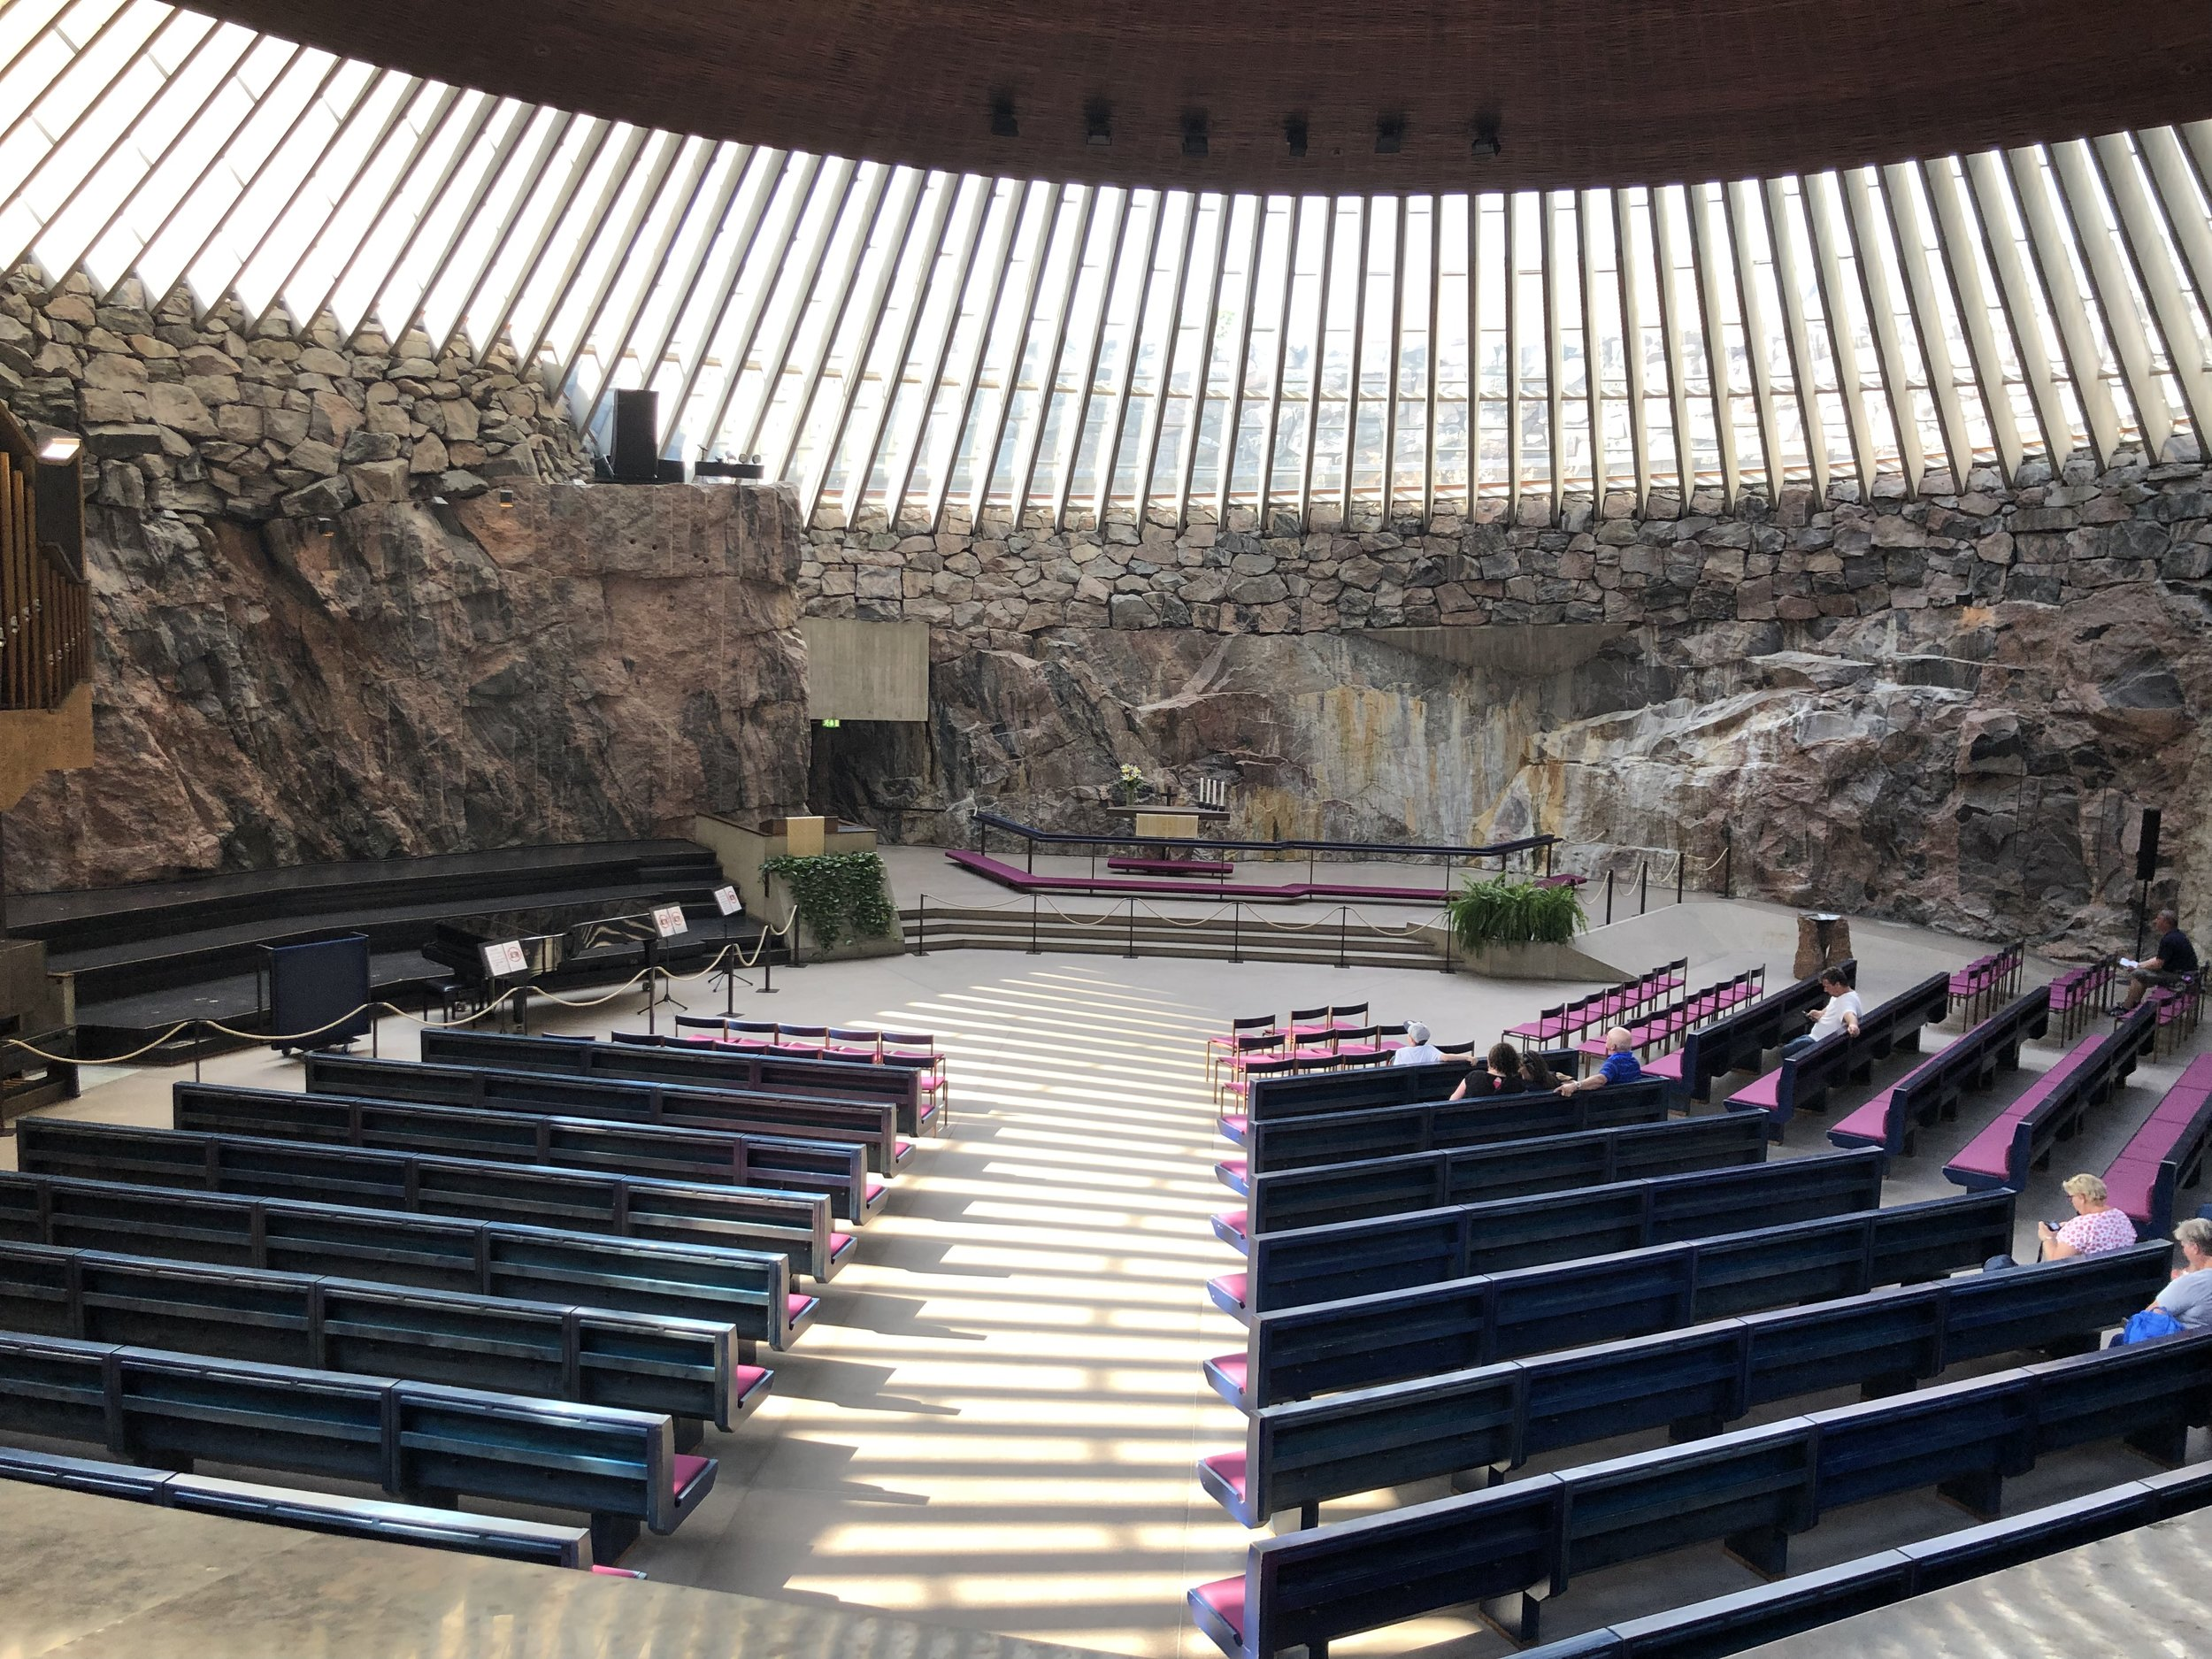 As its name implies, the Rock Church in Helsinki was cut of solid rock. It was a very peaceful space.